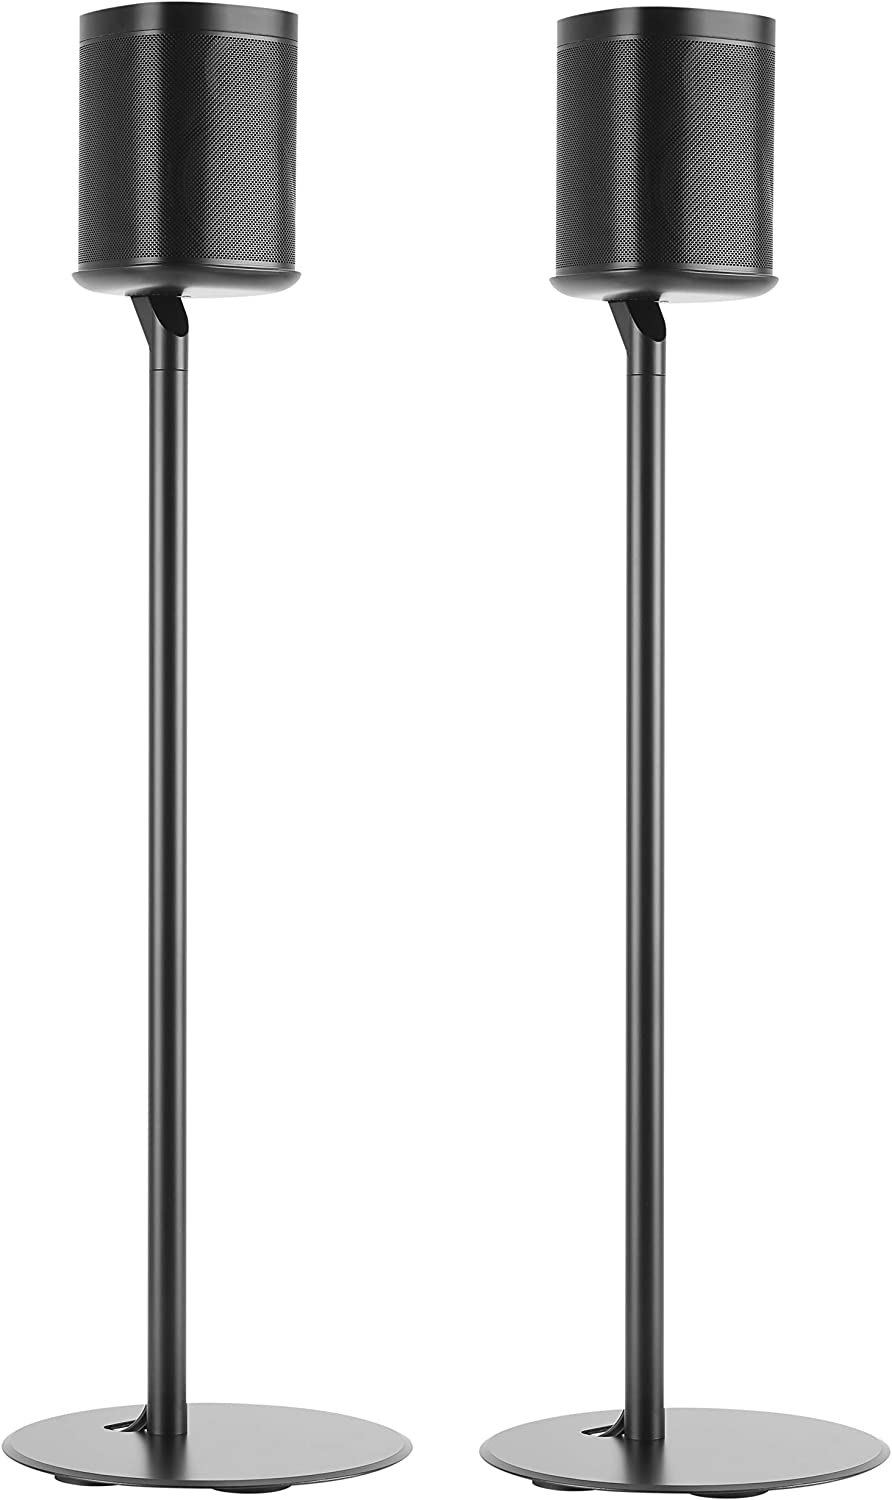 ynVISION Floor Stand for Sonos One, One SL and Play 1 Speaker 2 Pack YN-ONE Pair Black